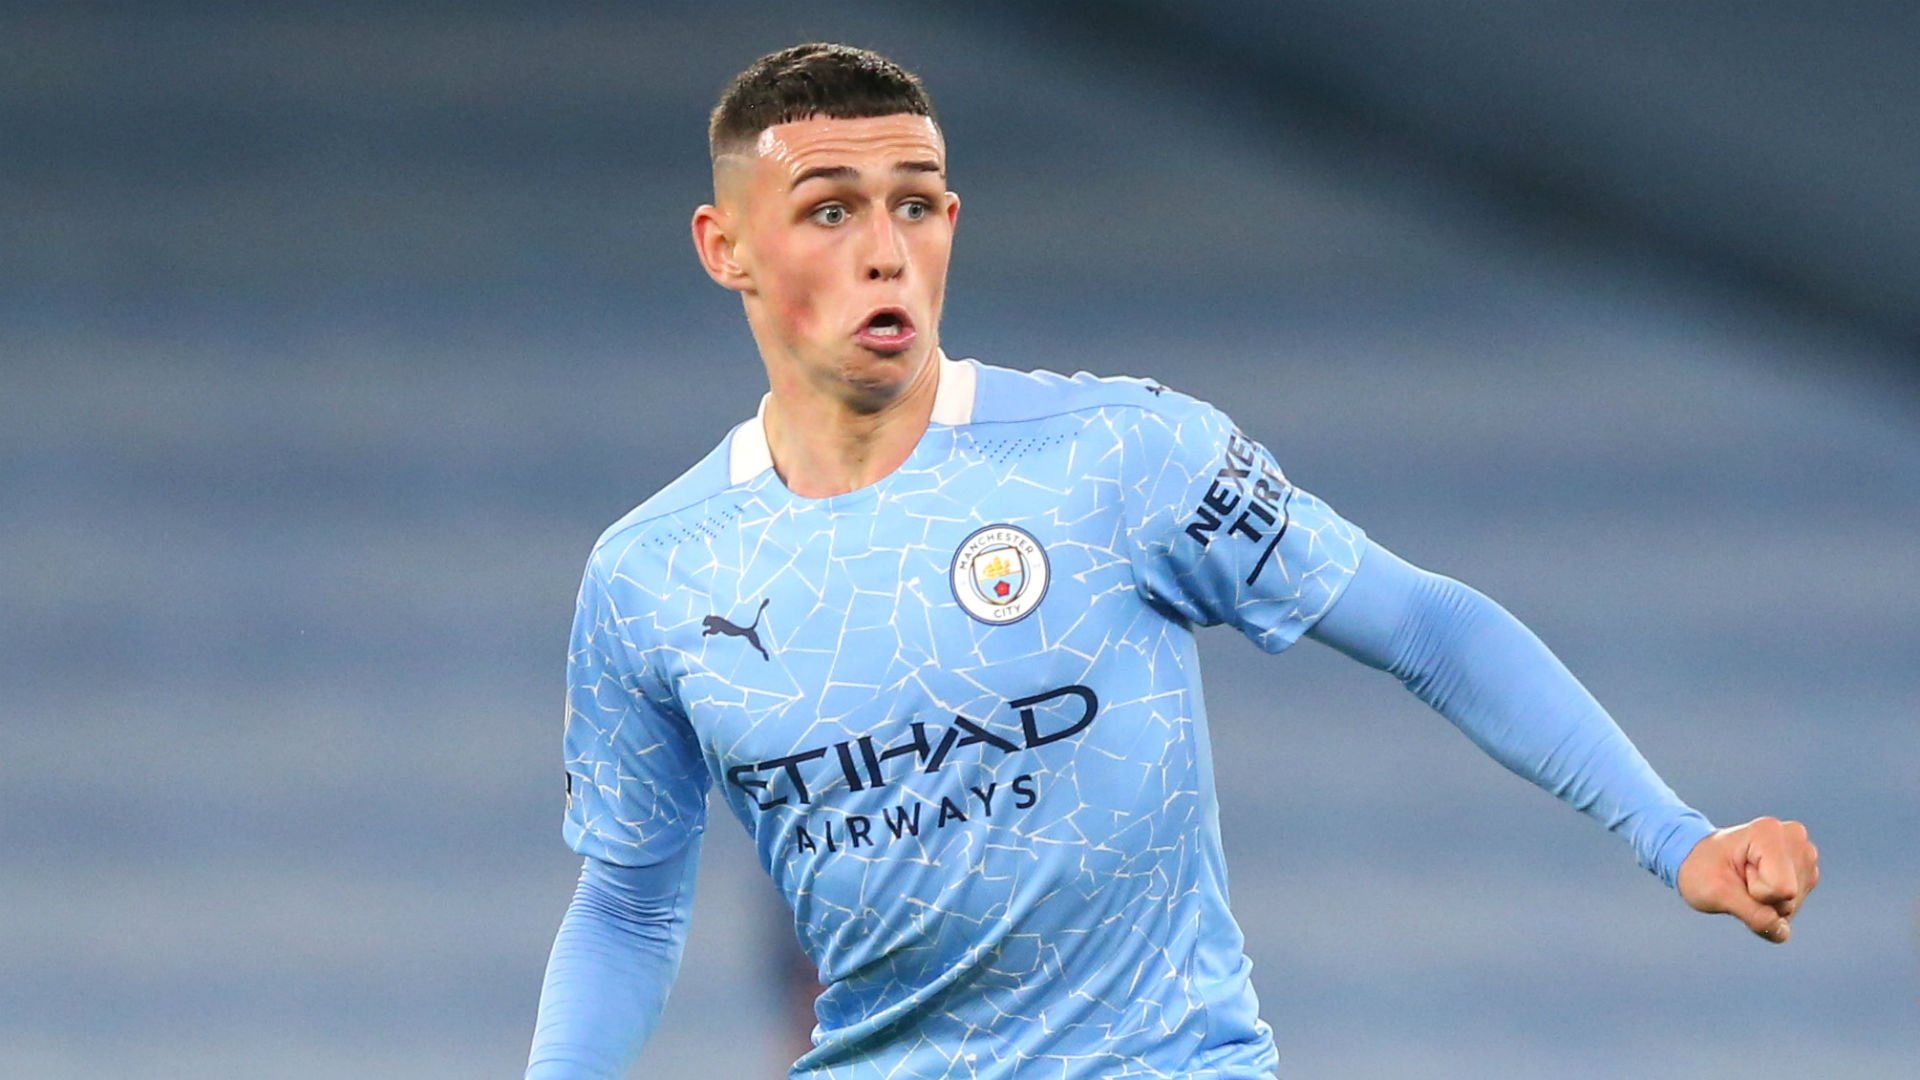 Manchester City star Foden 'still has big margins to improve' and must maintain high standards, says Guardiola